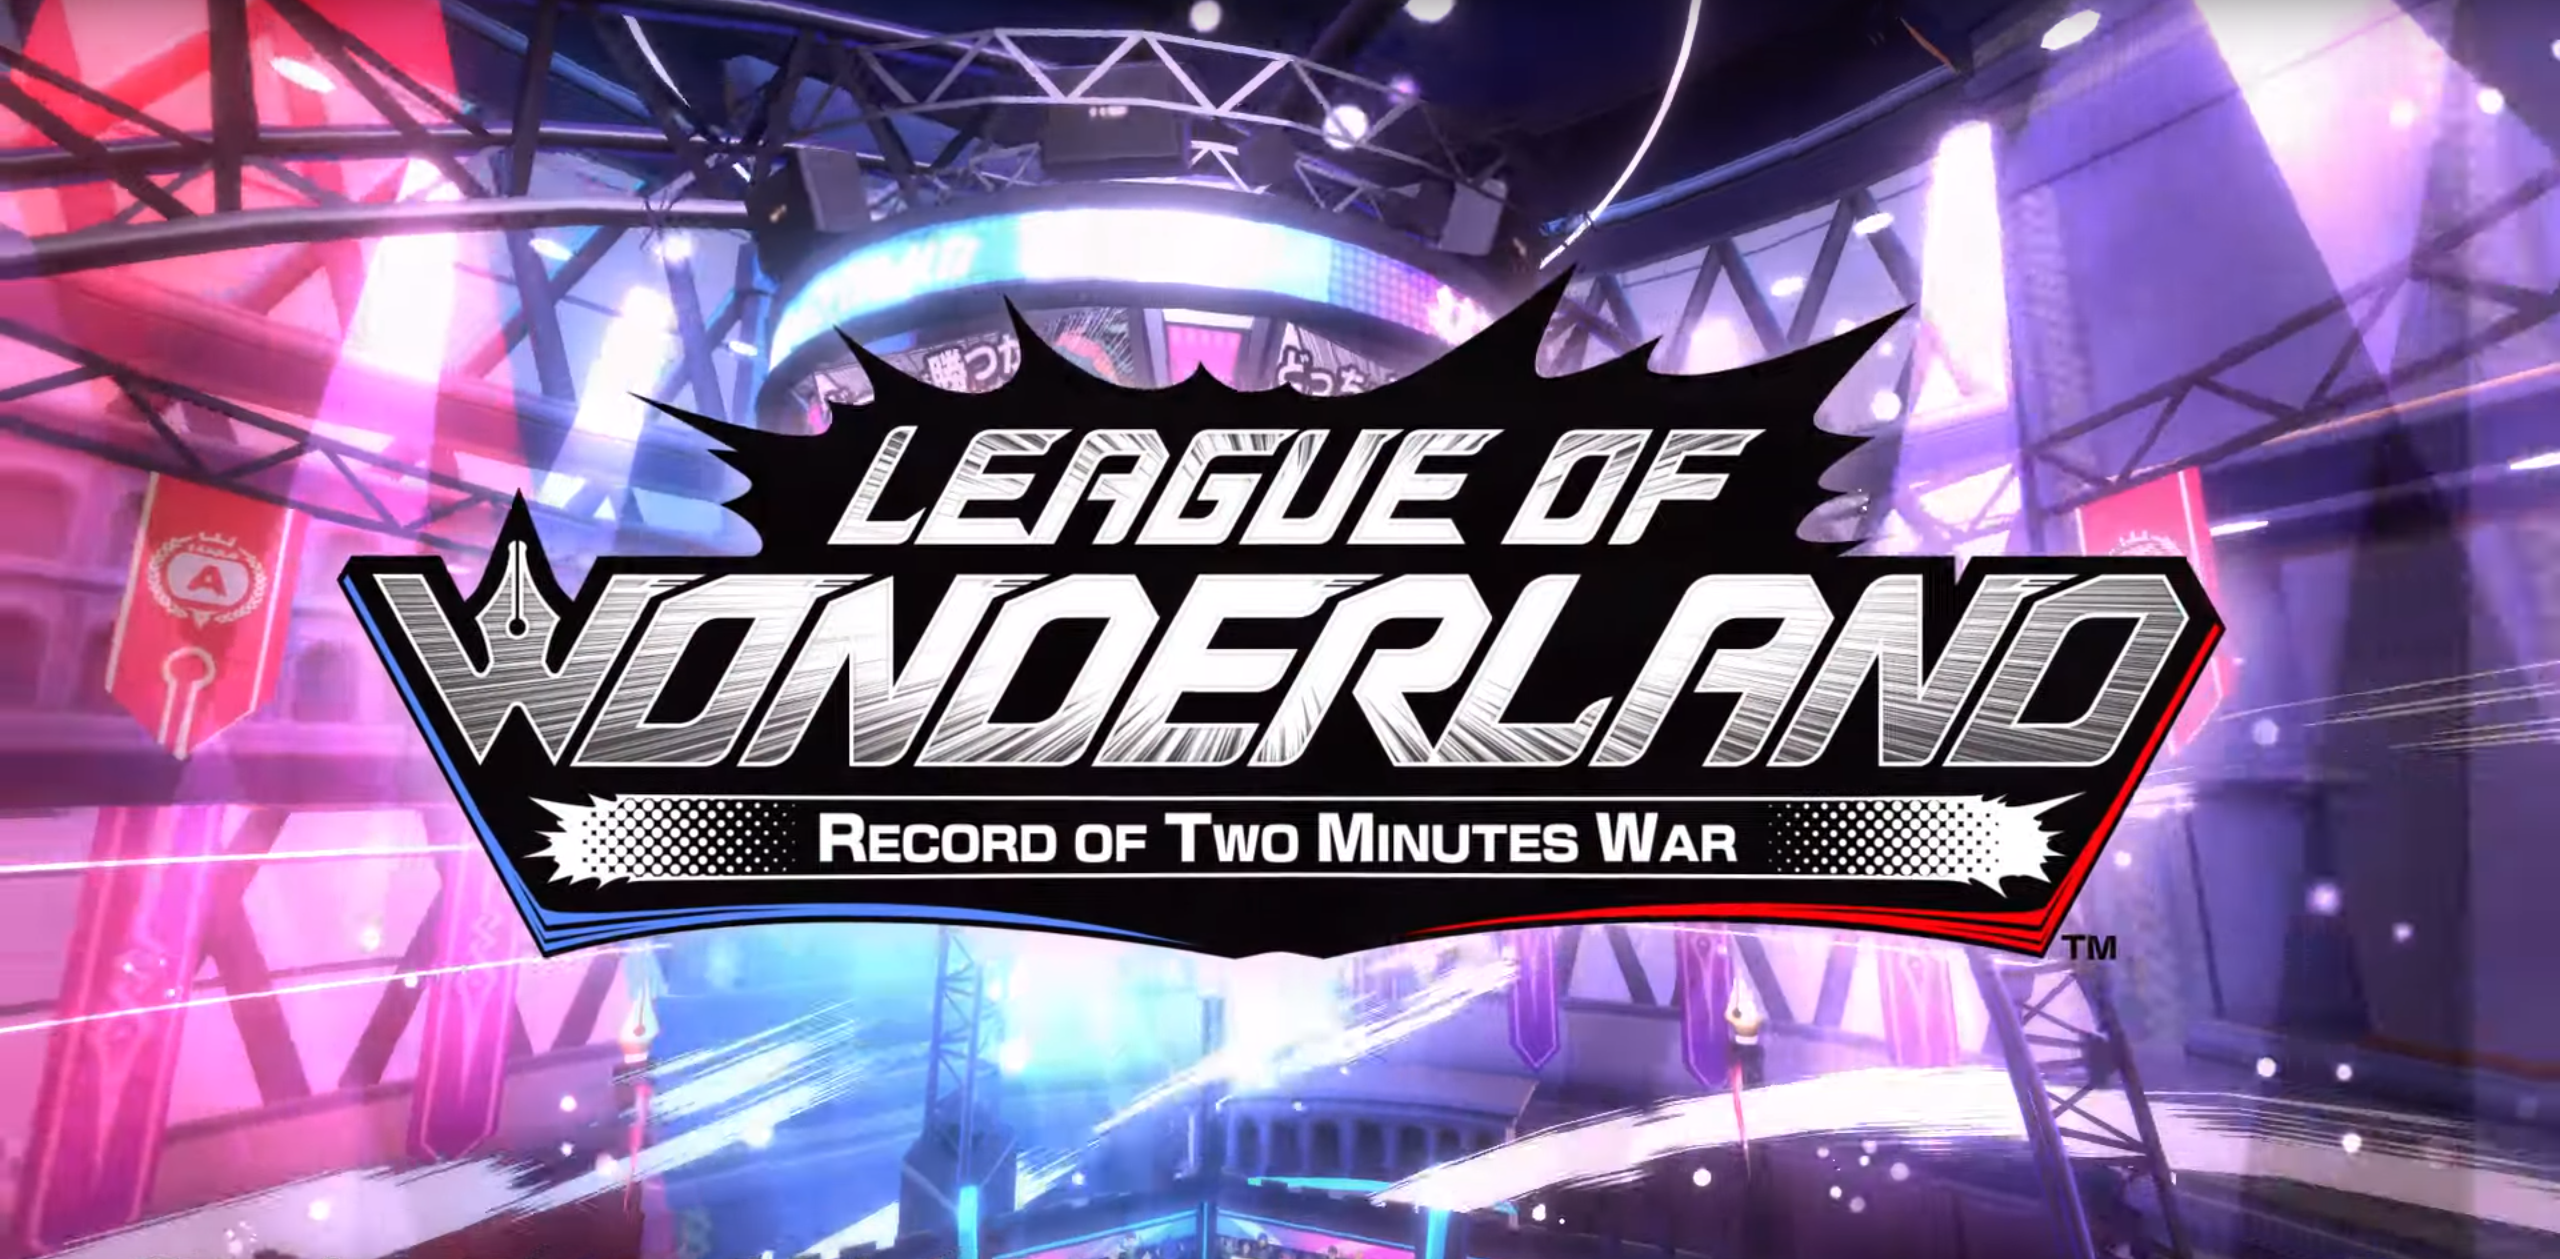 [Update: Coming Sept. 30] League of Wonderland is a new strategy battle game from Sega, and it's available for pre-registration